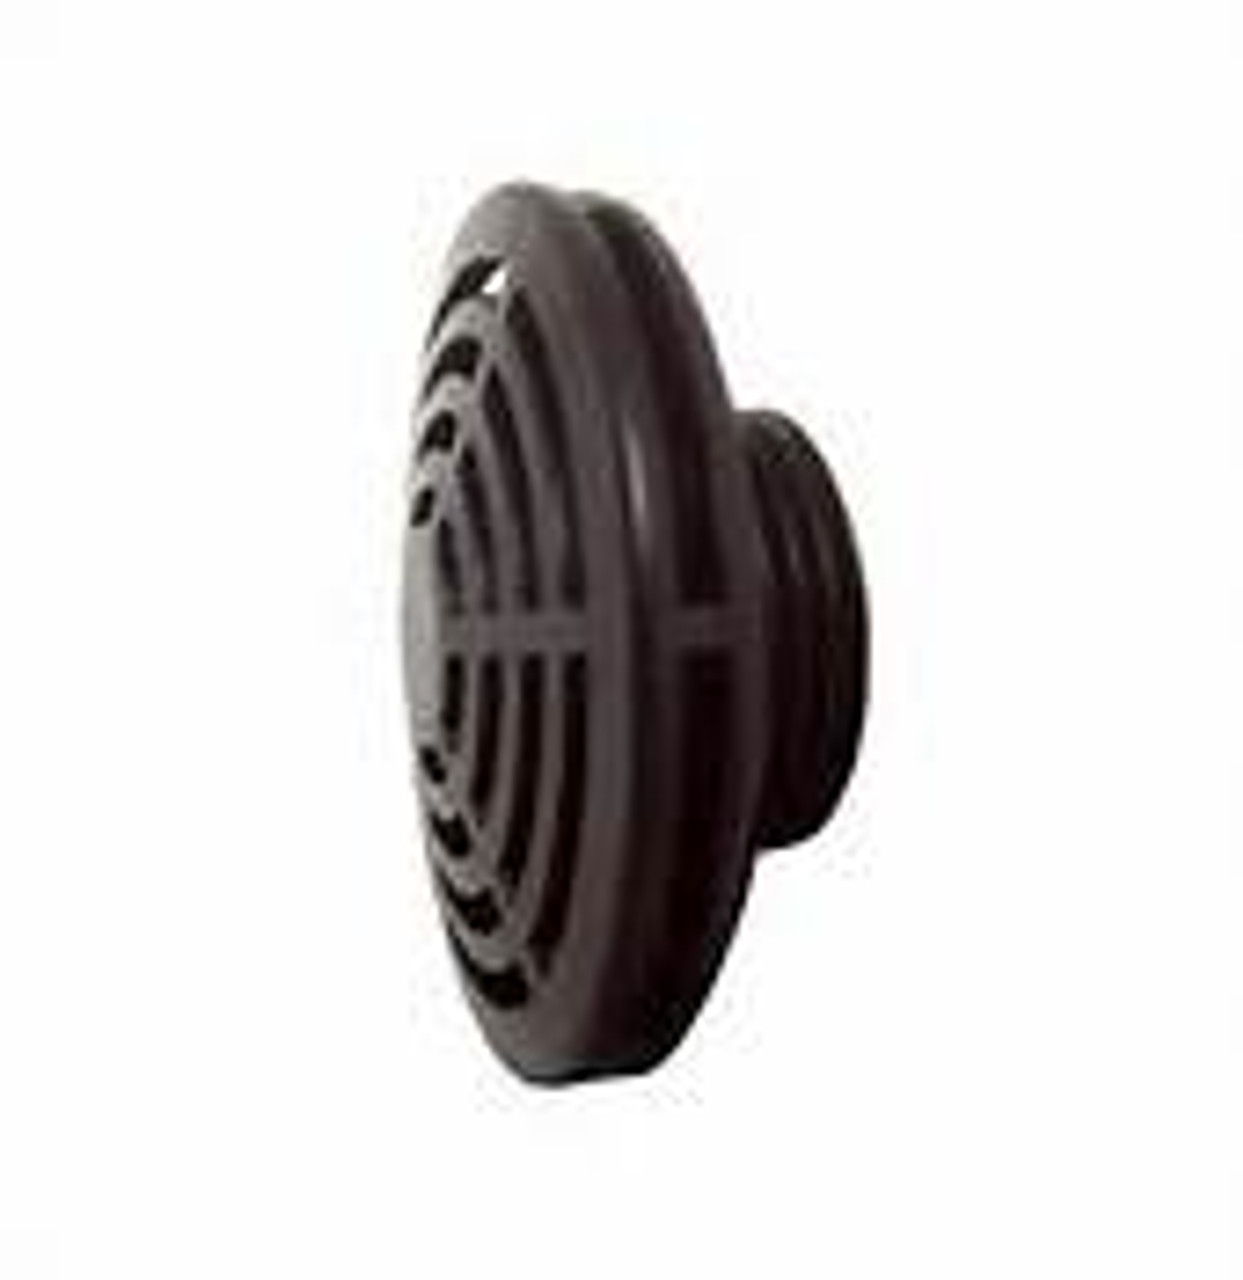 "Lifegard Low Profile Strainer 1/2"" FIT (R441008)"